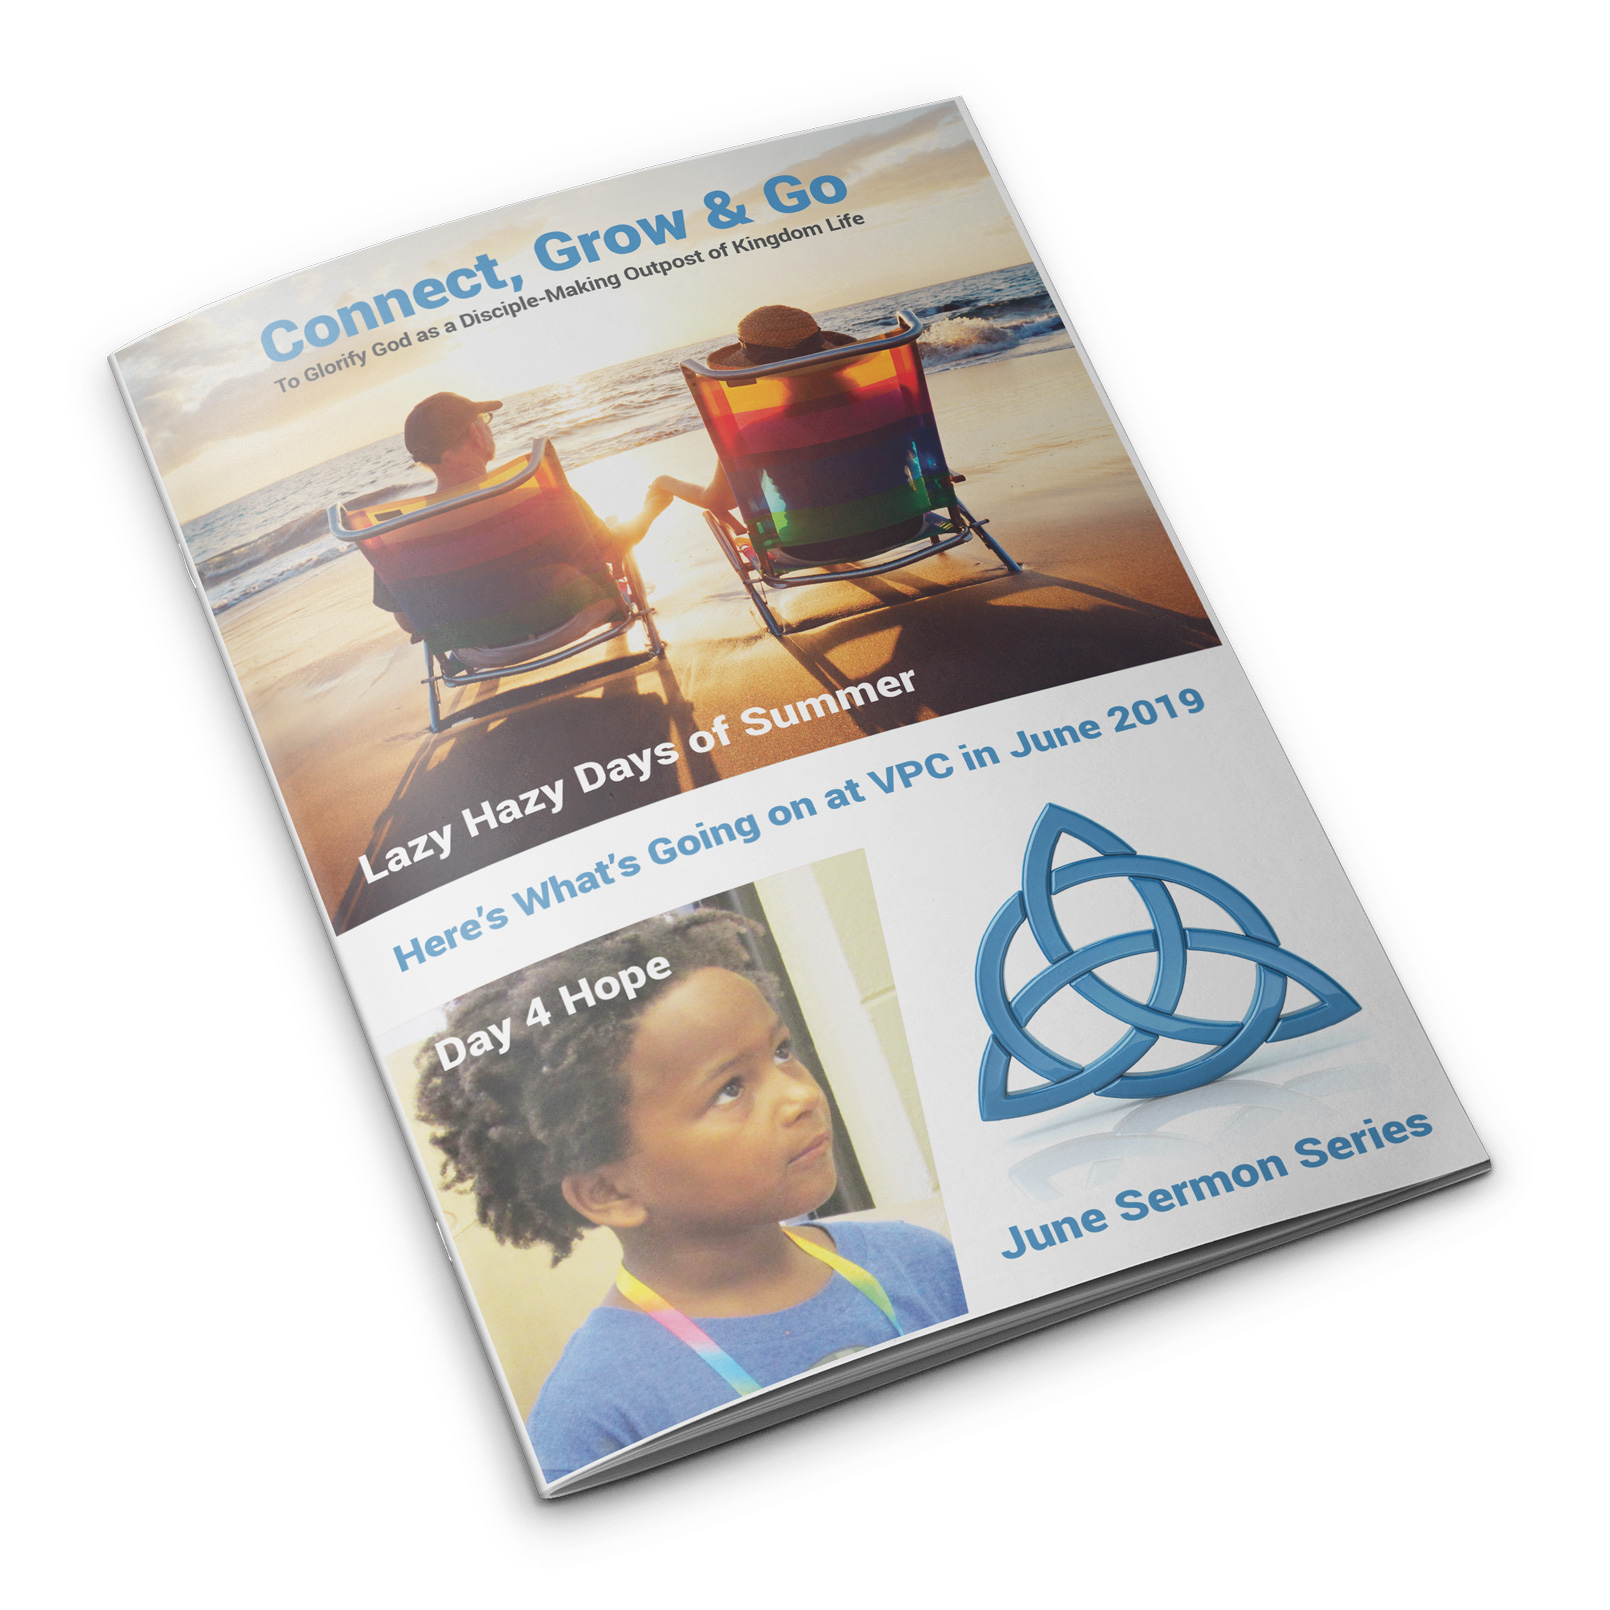 Copy of June Connect, Grow & G0